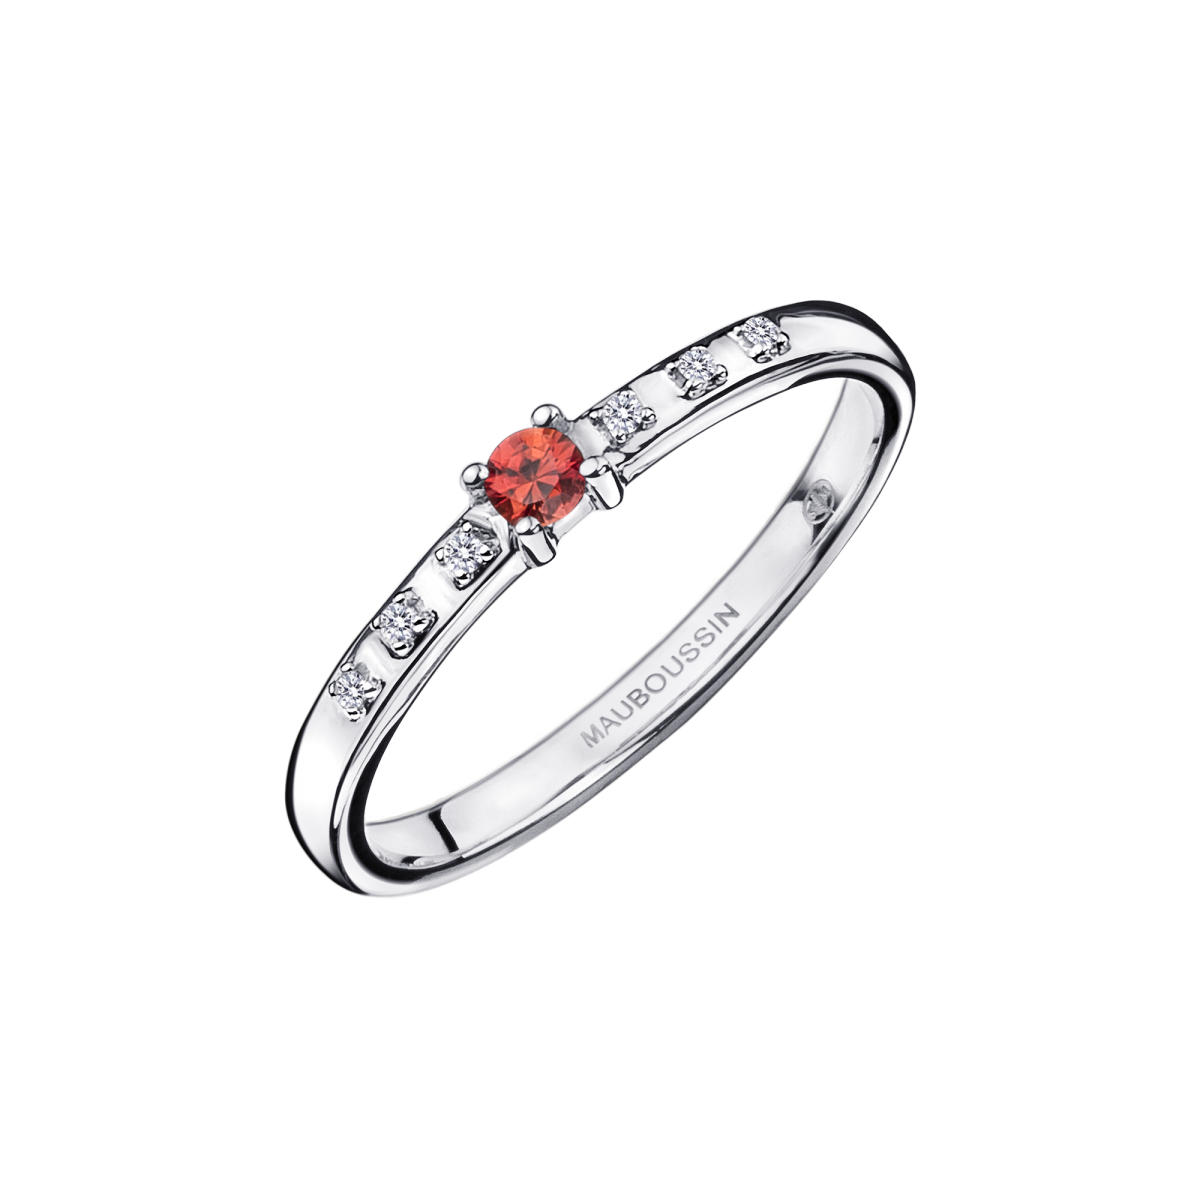 bague-mauboussin-capsule-emotions-saphir-orange-et-diamants-n2